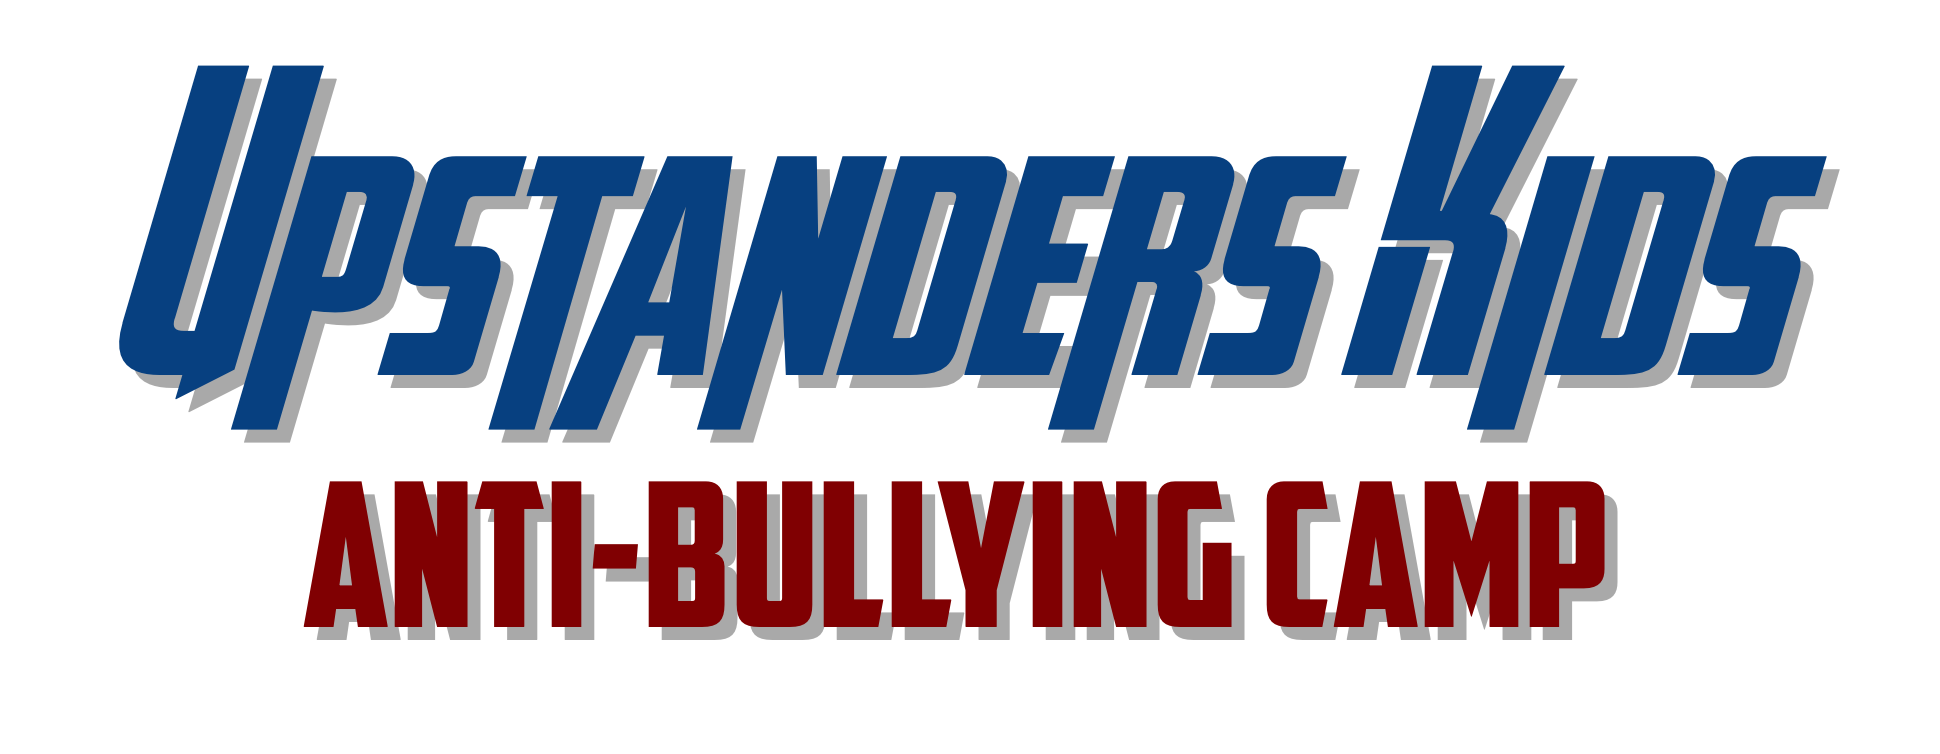 Anti Bullying Camp